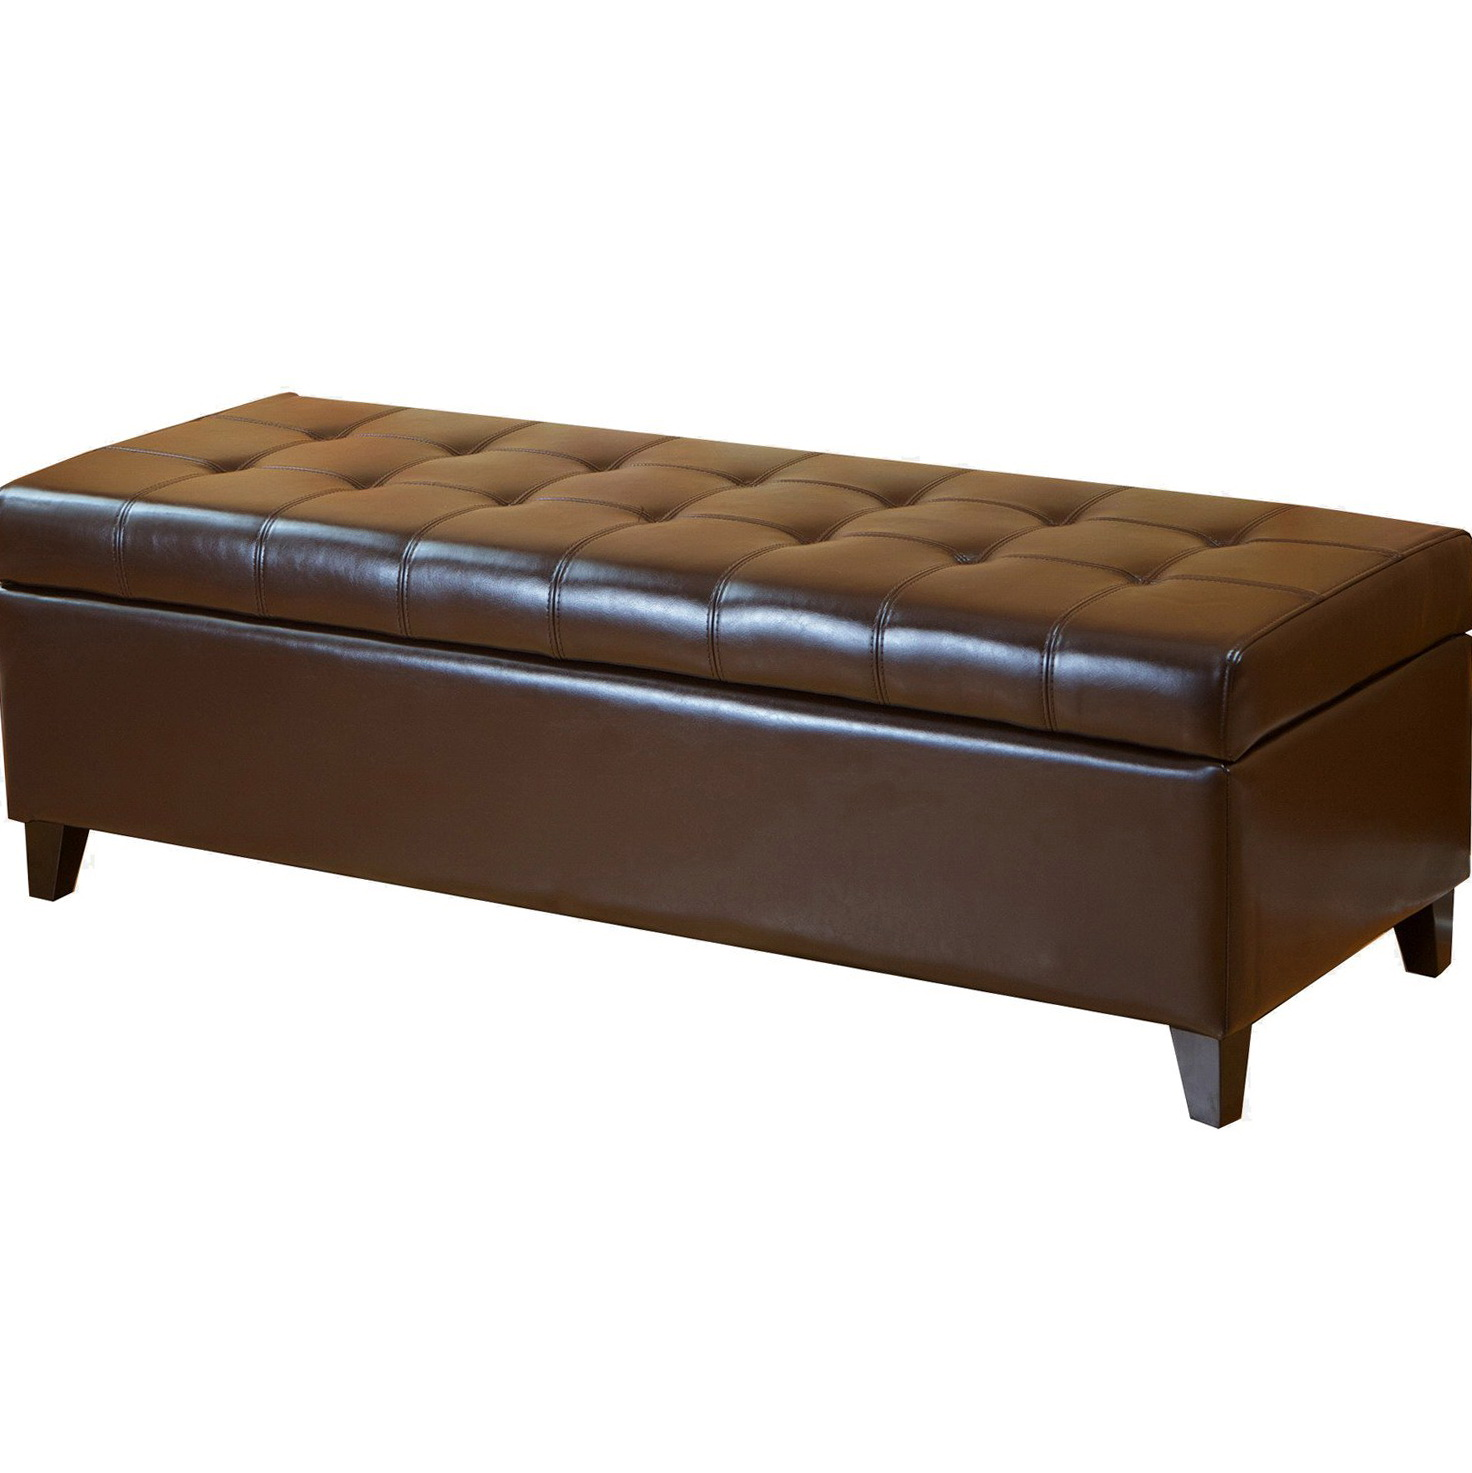 End Of Bed Storage Bench Target